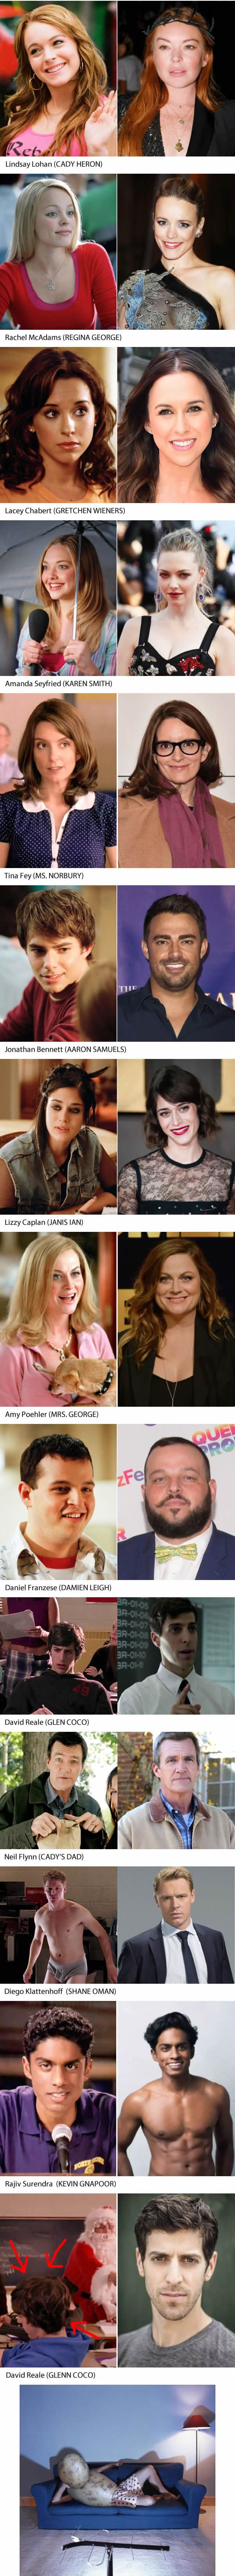 Happy Mean Girls Day! Cast Then and Now